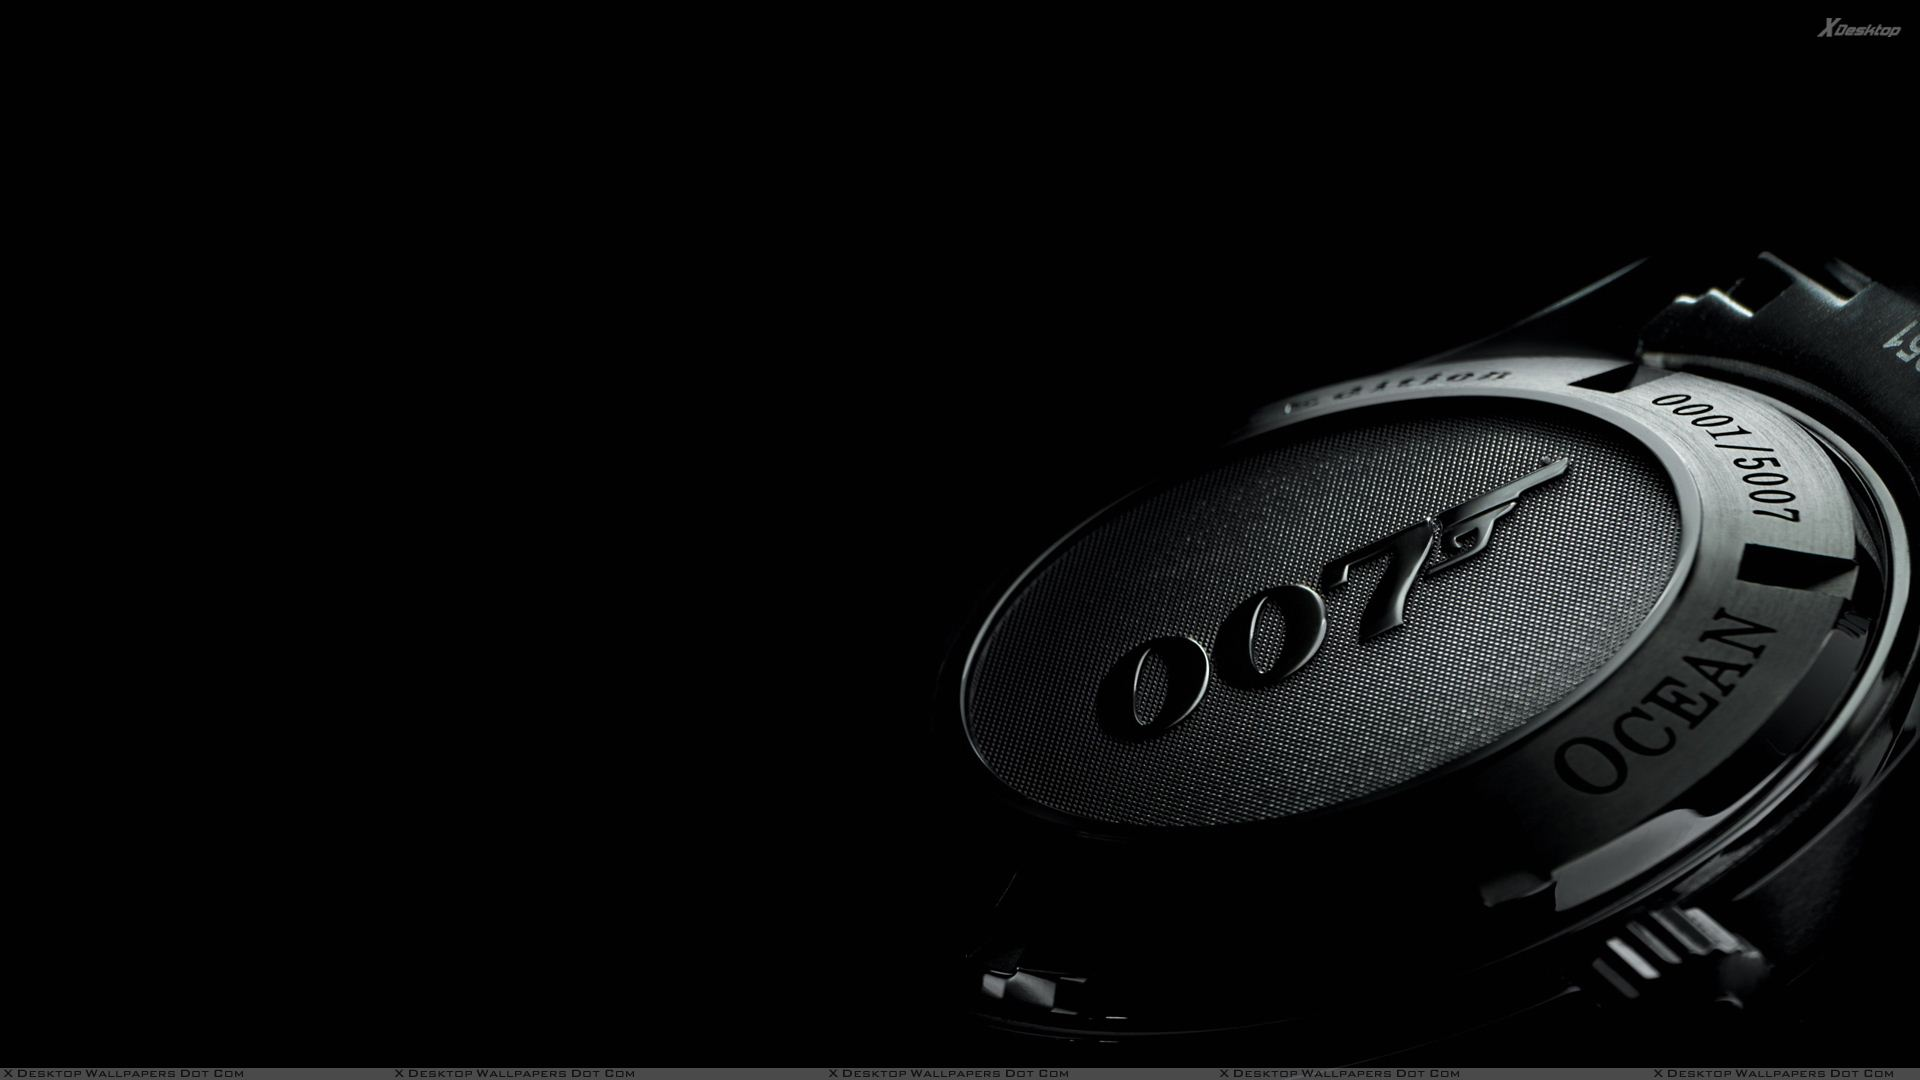 007 Wrist Watch N Black Background Wallpaper 1920x1080